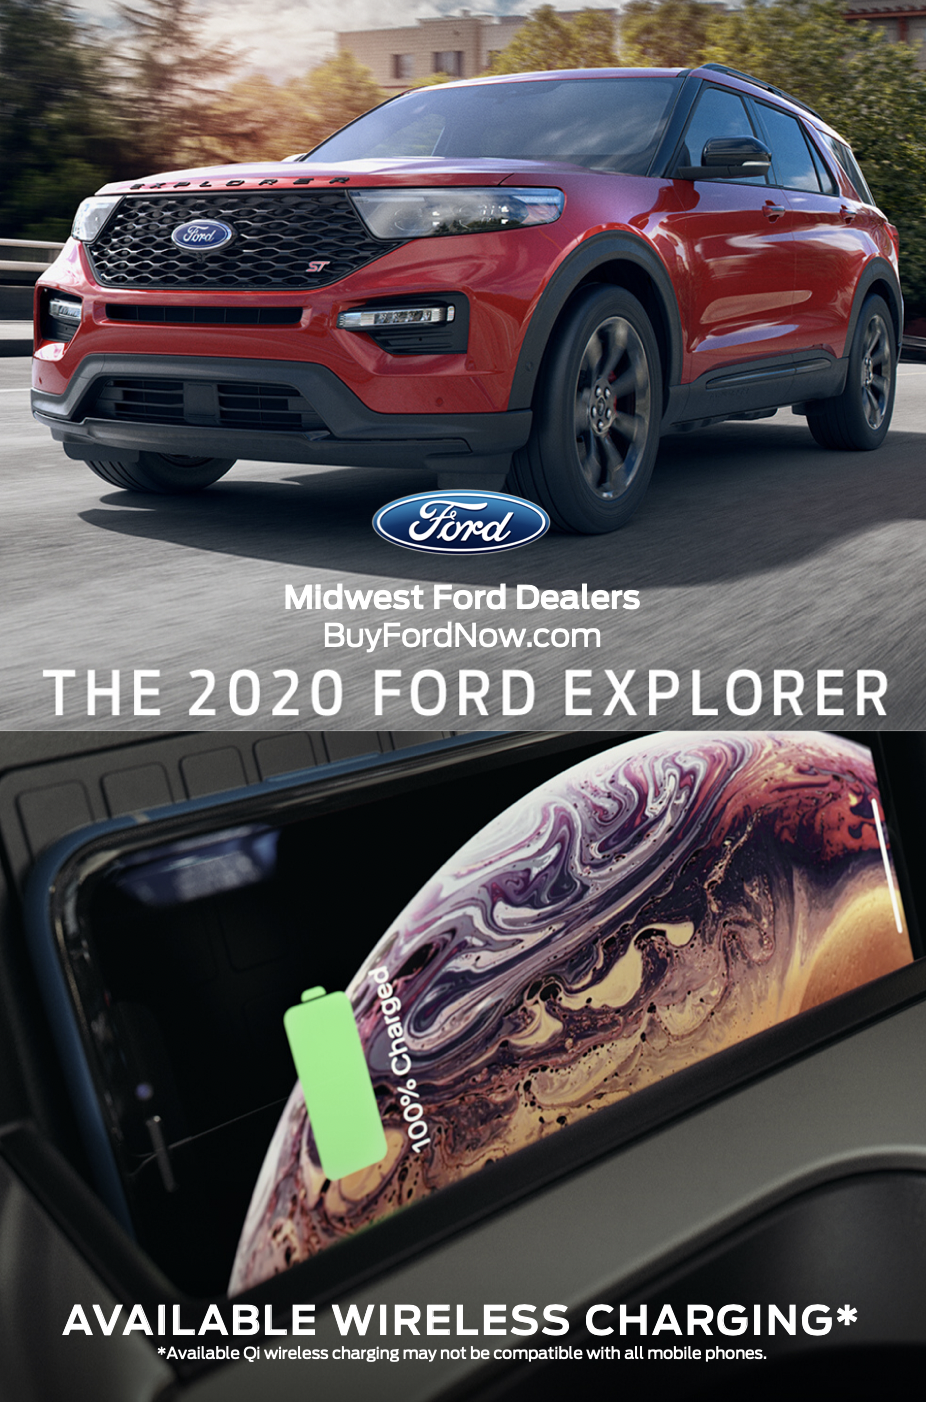 Pin By Bev Nuss On Beverly Nuss In 2020 Ford Explorer 2020 Ford